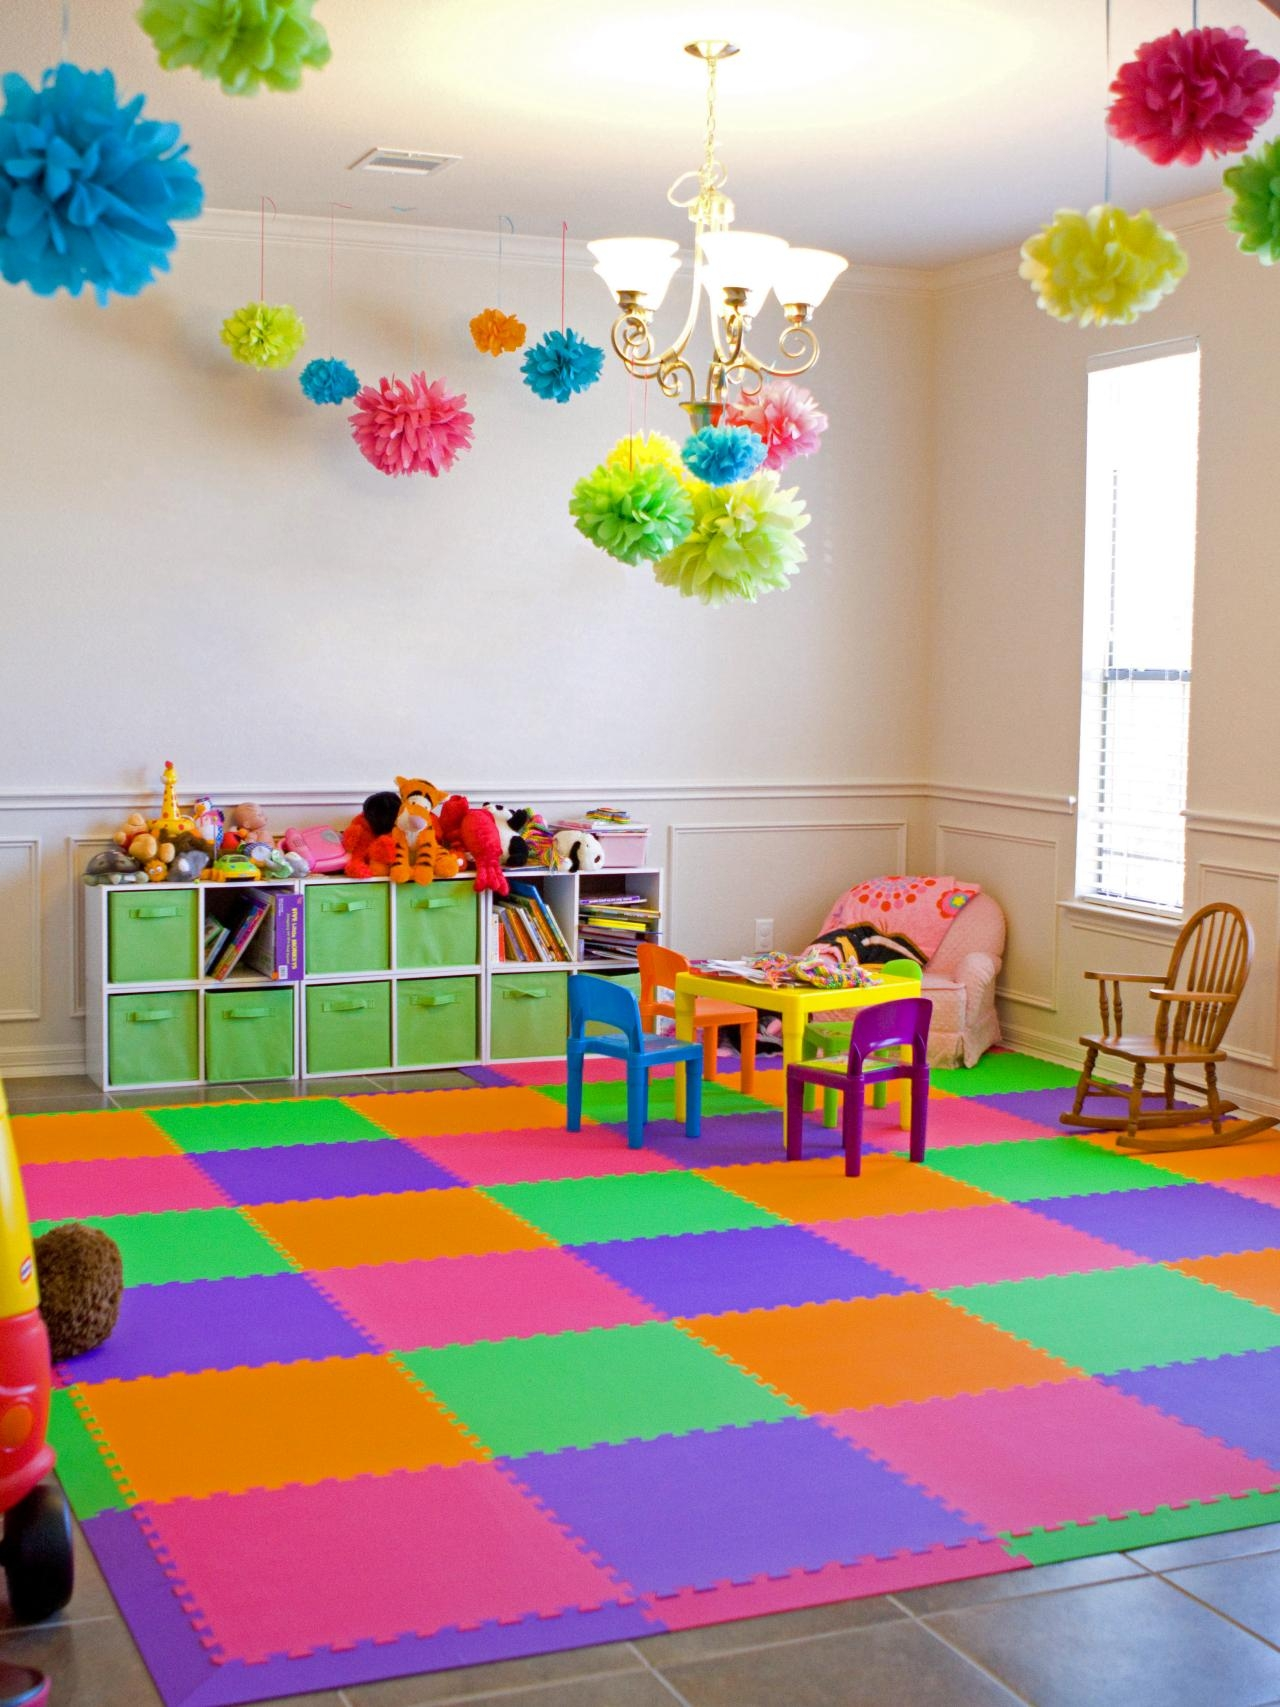 Kids Bedroom Flooring Pictures Options Ideas Hgtv Throughout Carpet For Kids Rooms (Image 12 of 15)